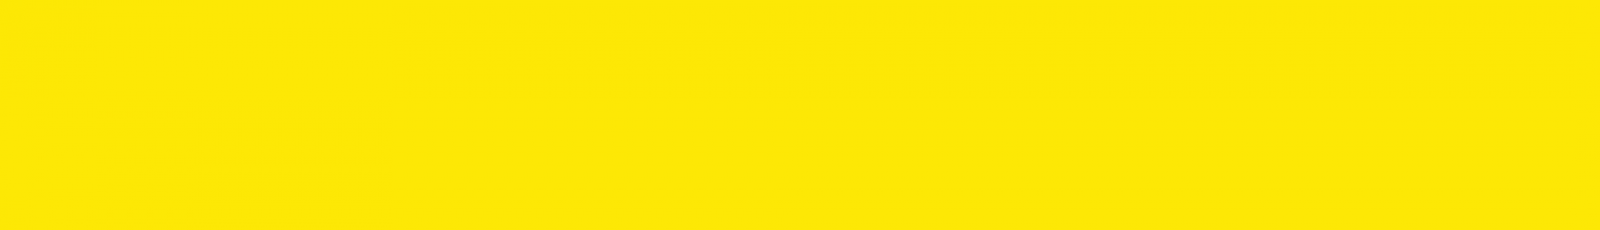 cropped-yellow.png